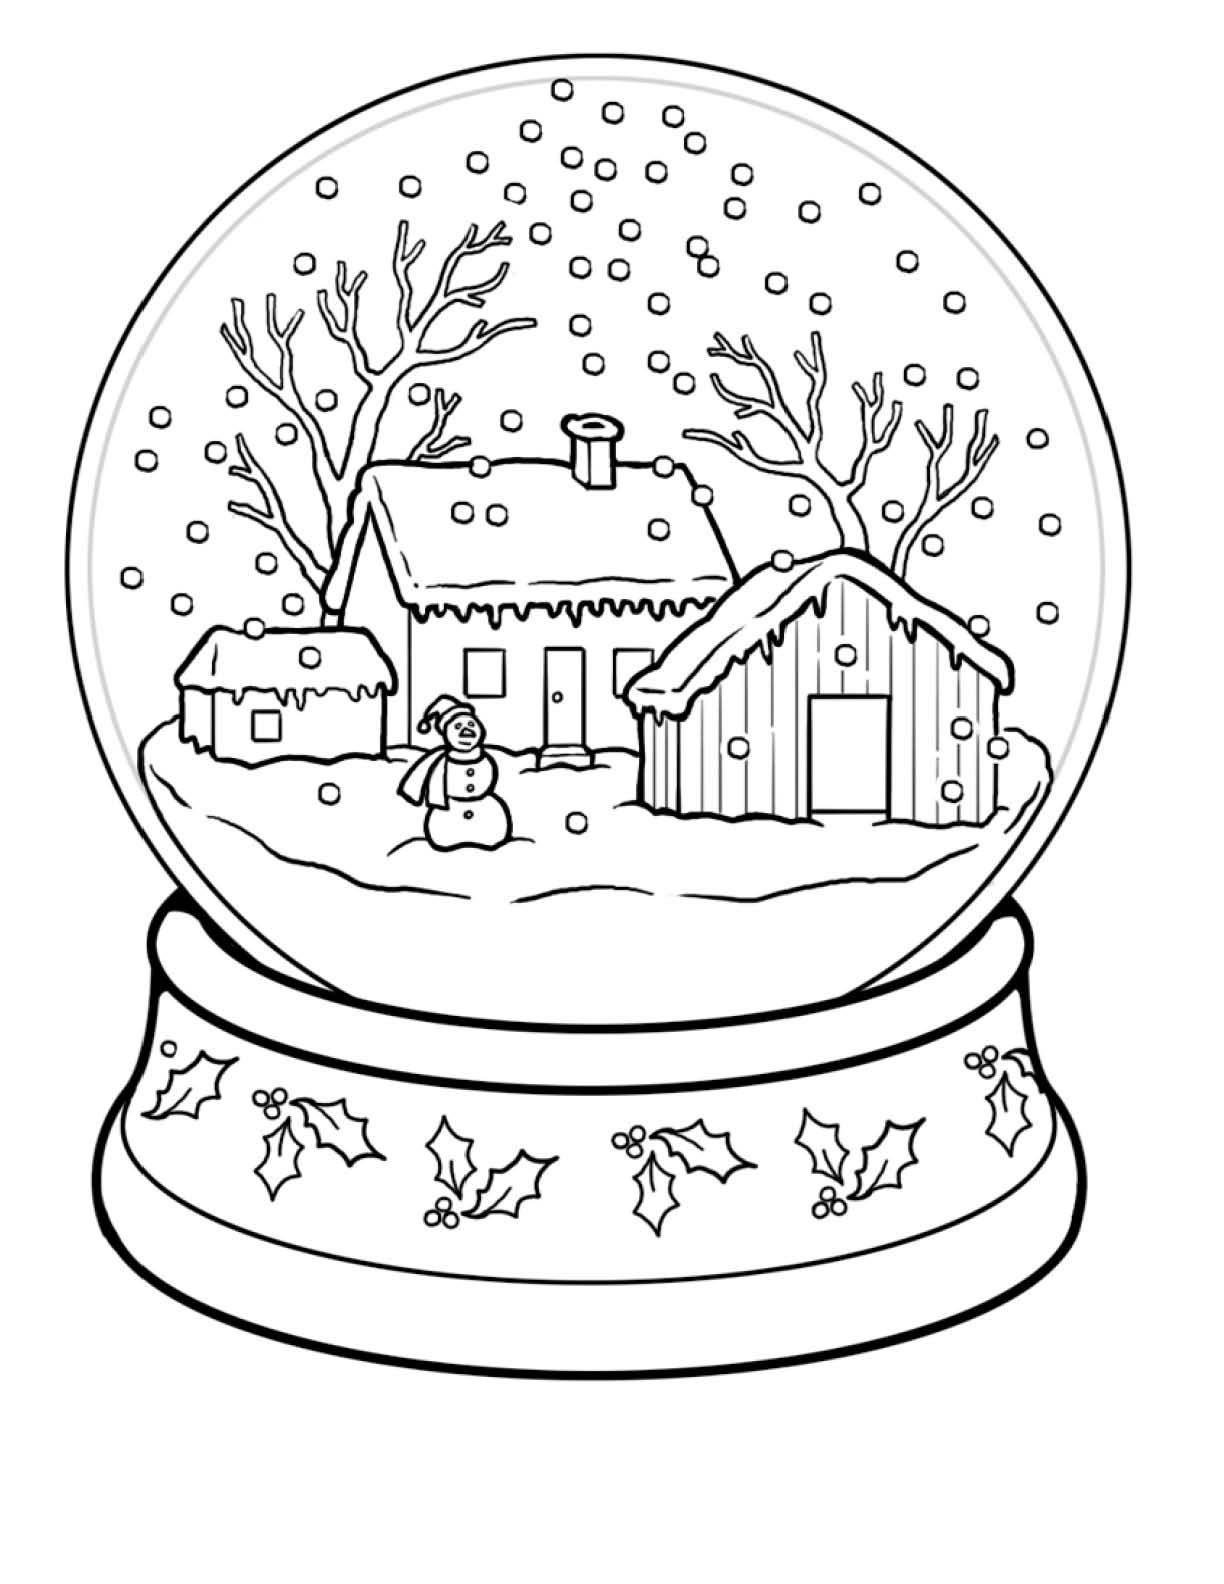 Printable Winter Scene Coloring Pages - Coloring Home